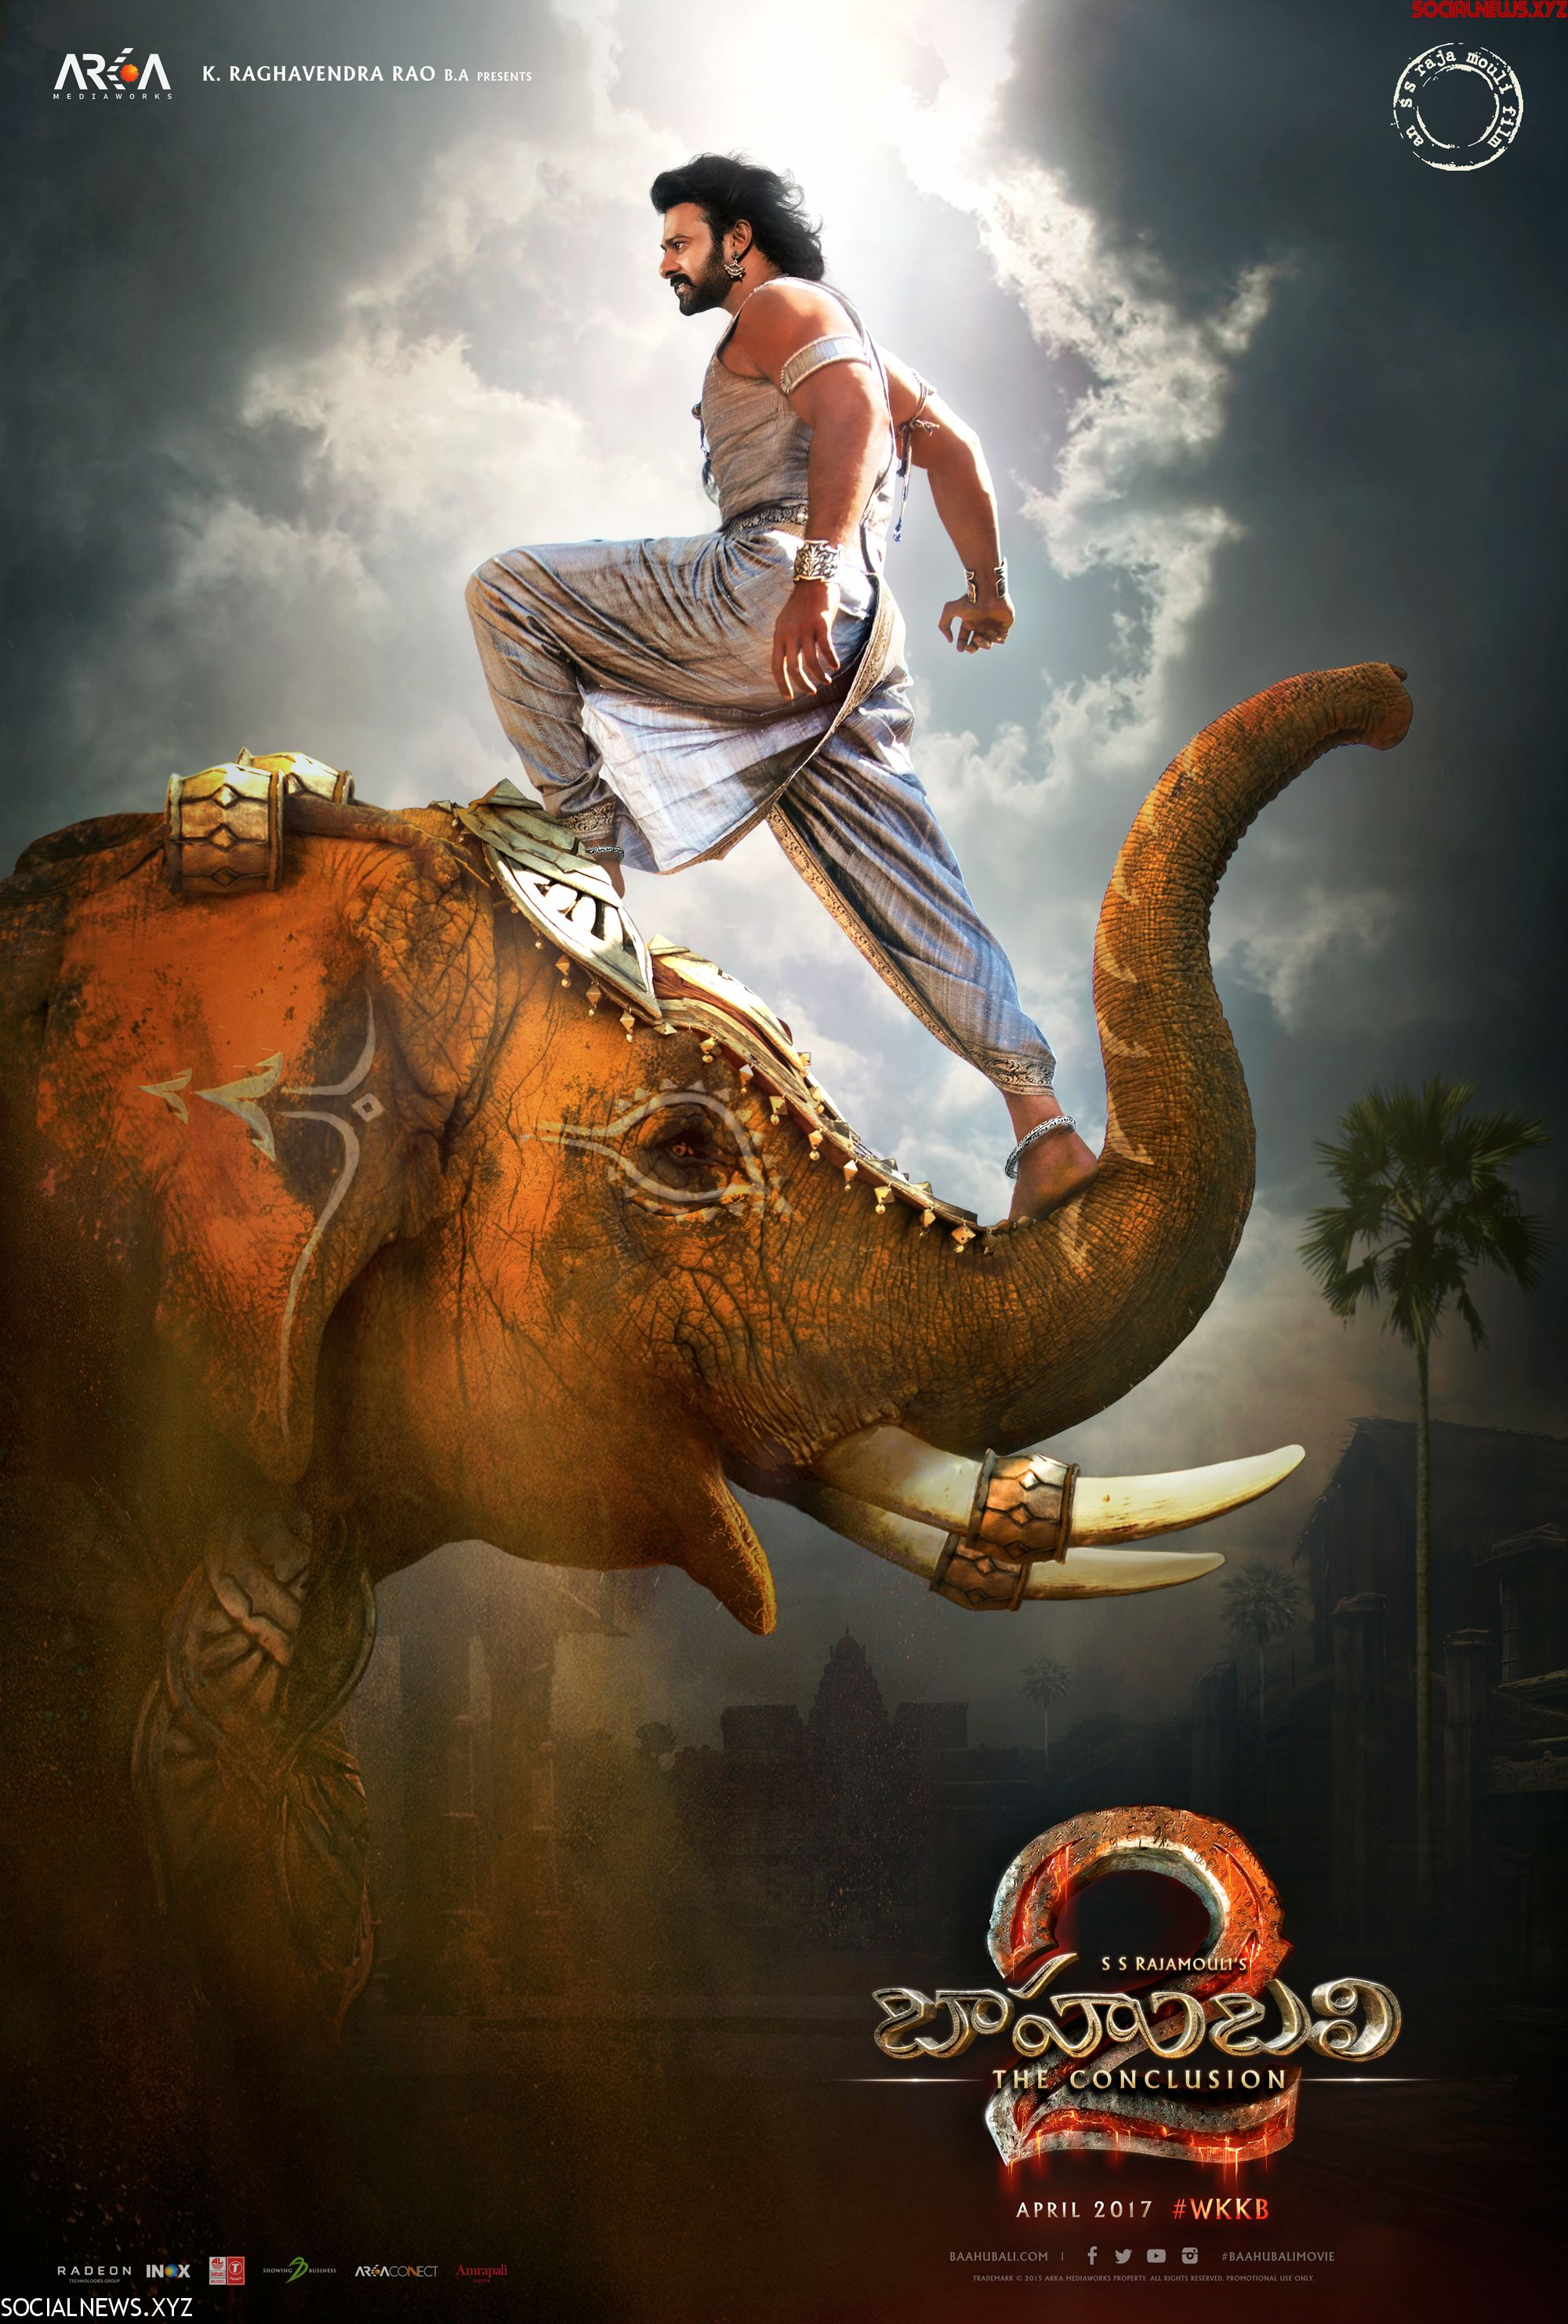 prabhas in bahubali the conclusion new poster - social news xyz